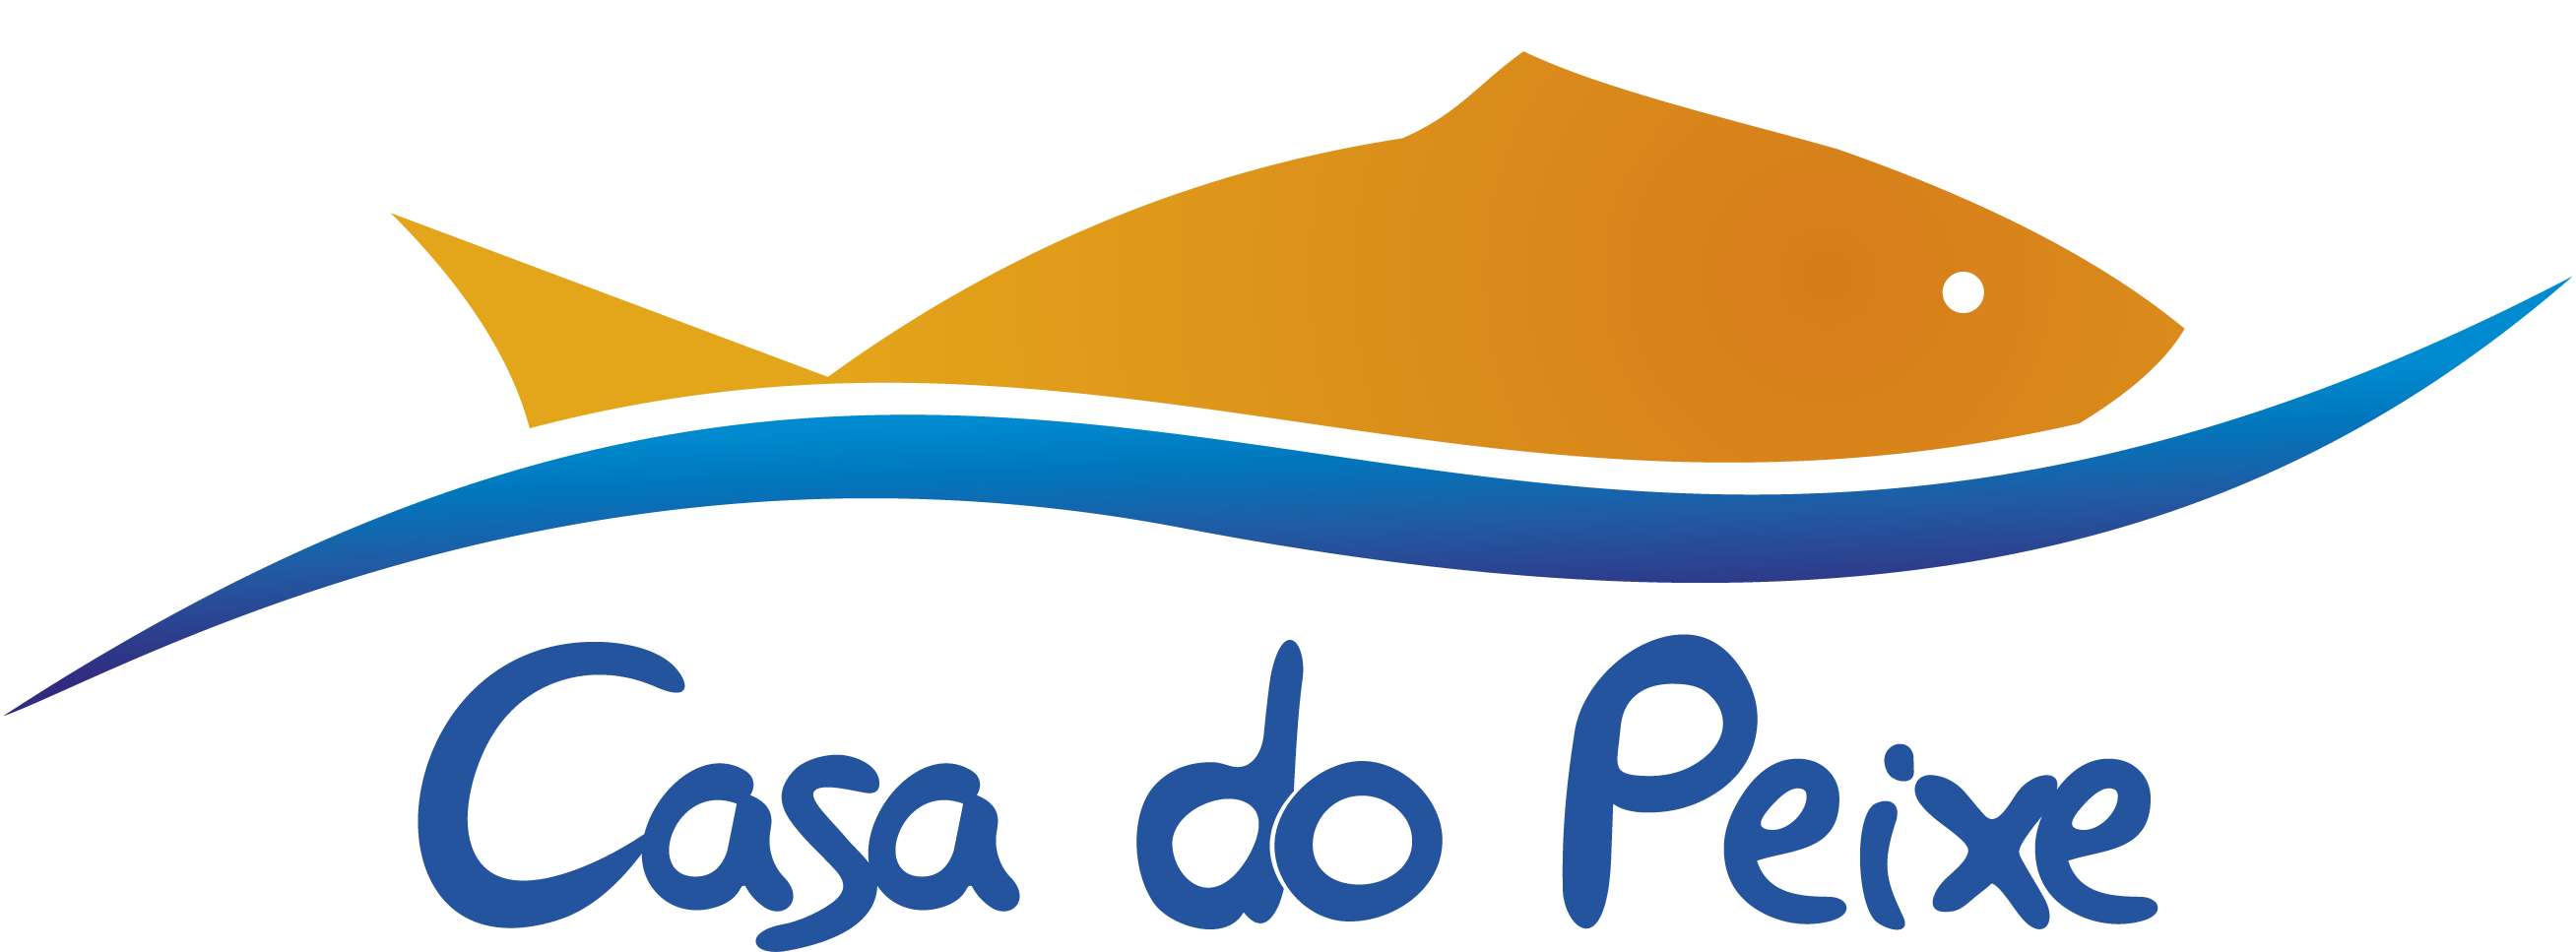 Logotipo Casa do Peixe